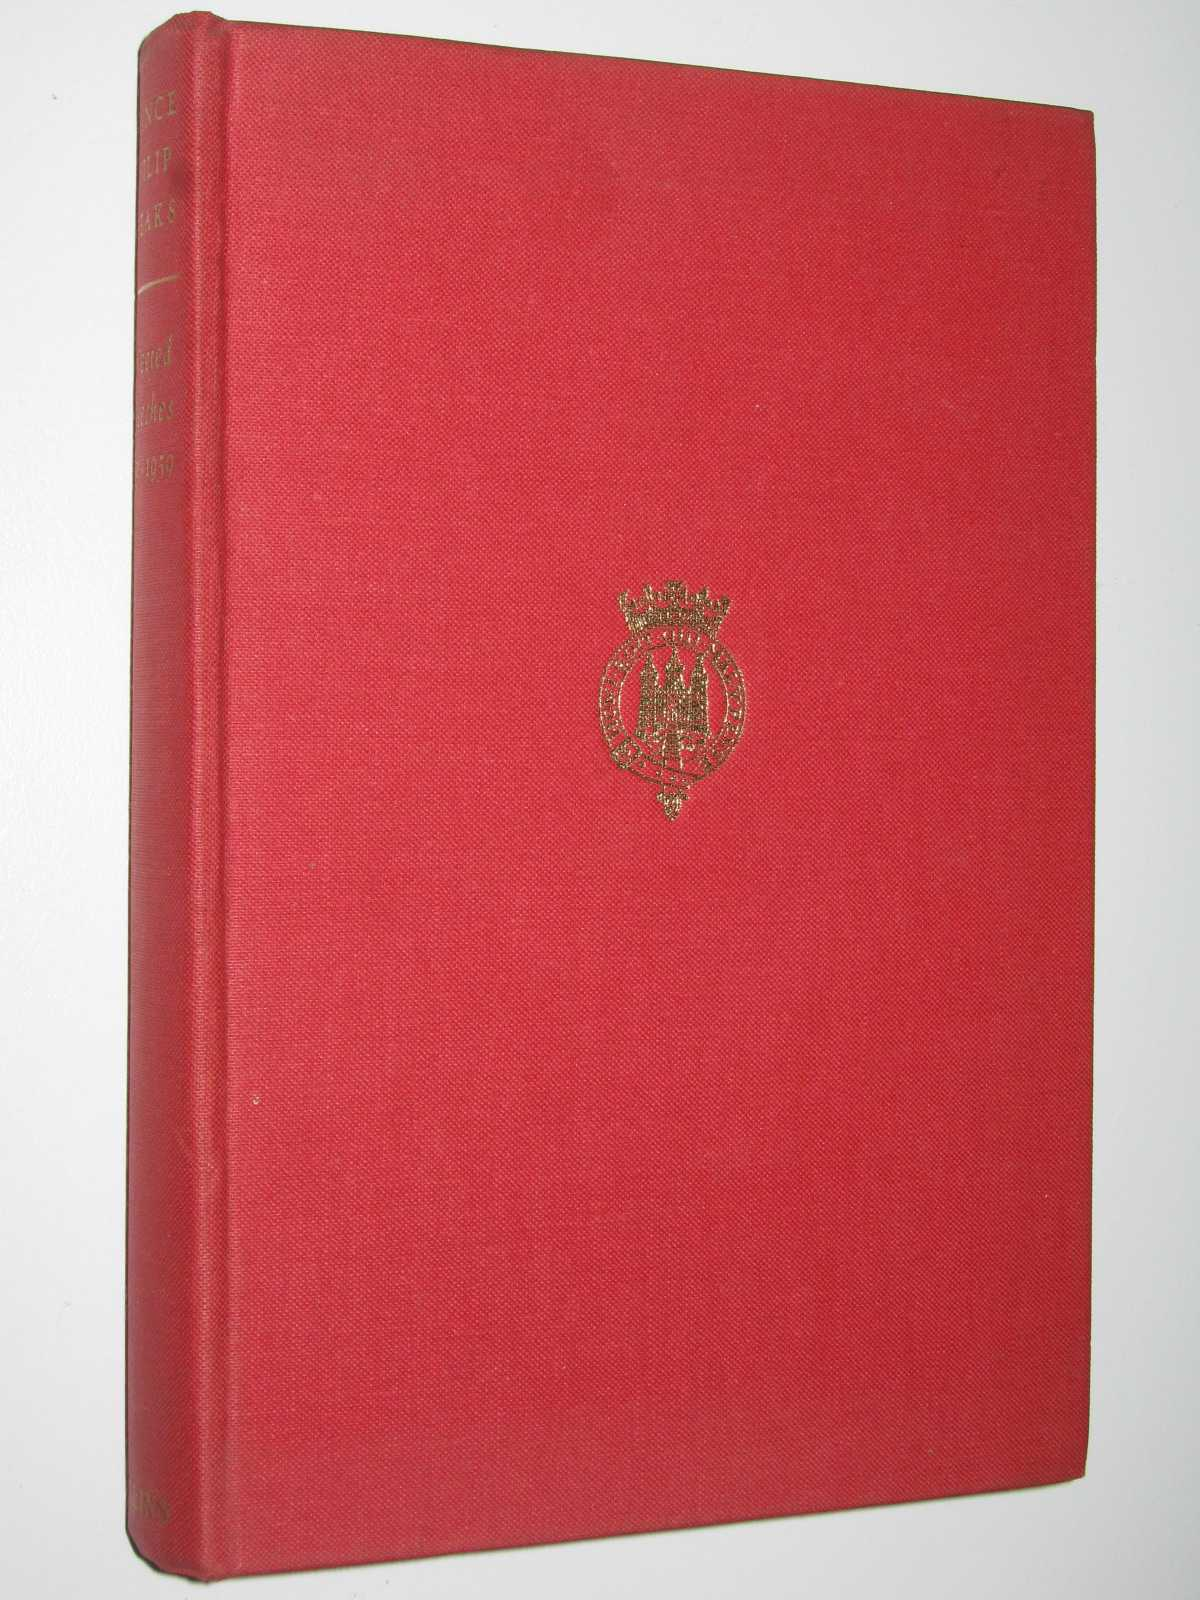 Image for Prince Philip Speaks : Selected Speeches by His Royal Highness The Prince Philip Duke Of Edinburgh, K.G. 1956-1959